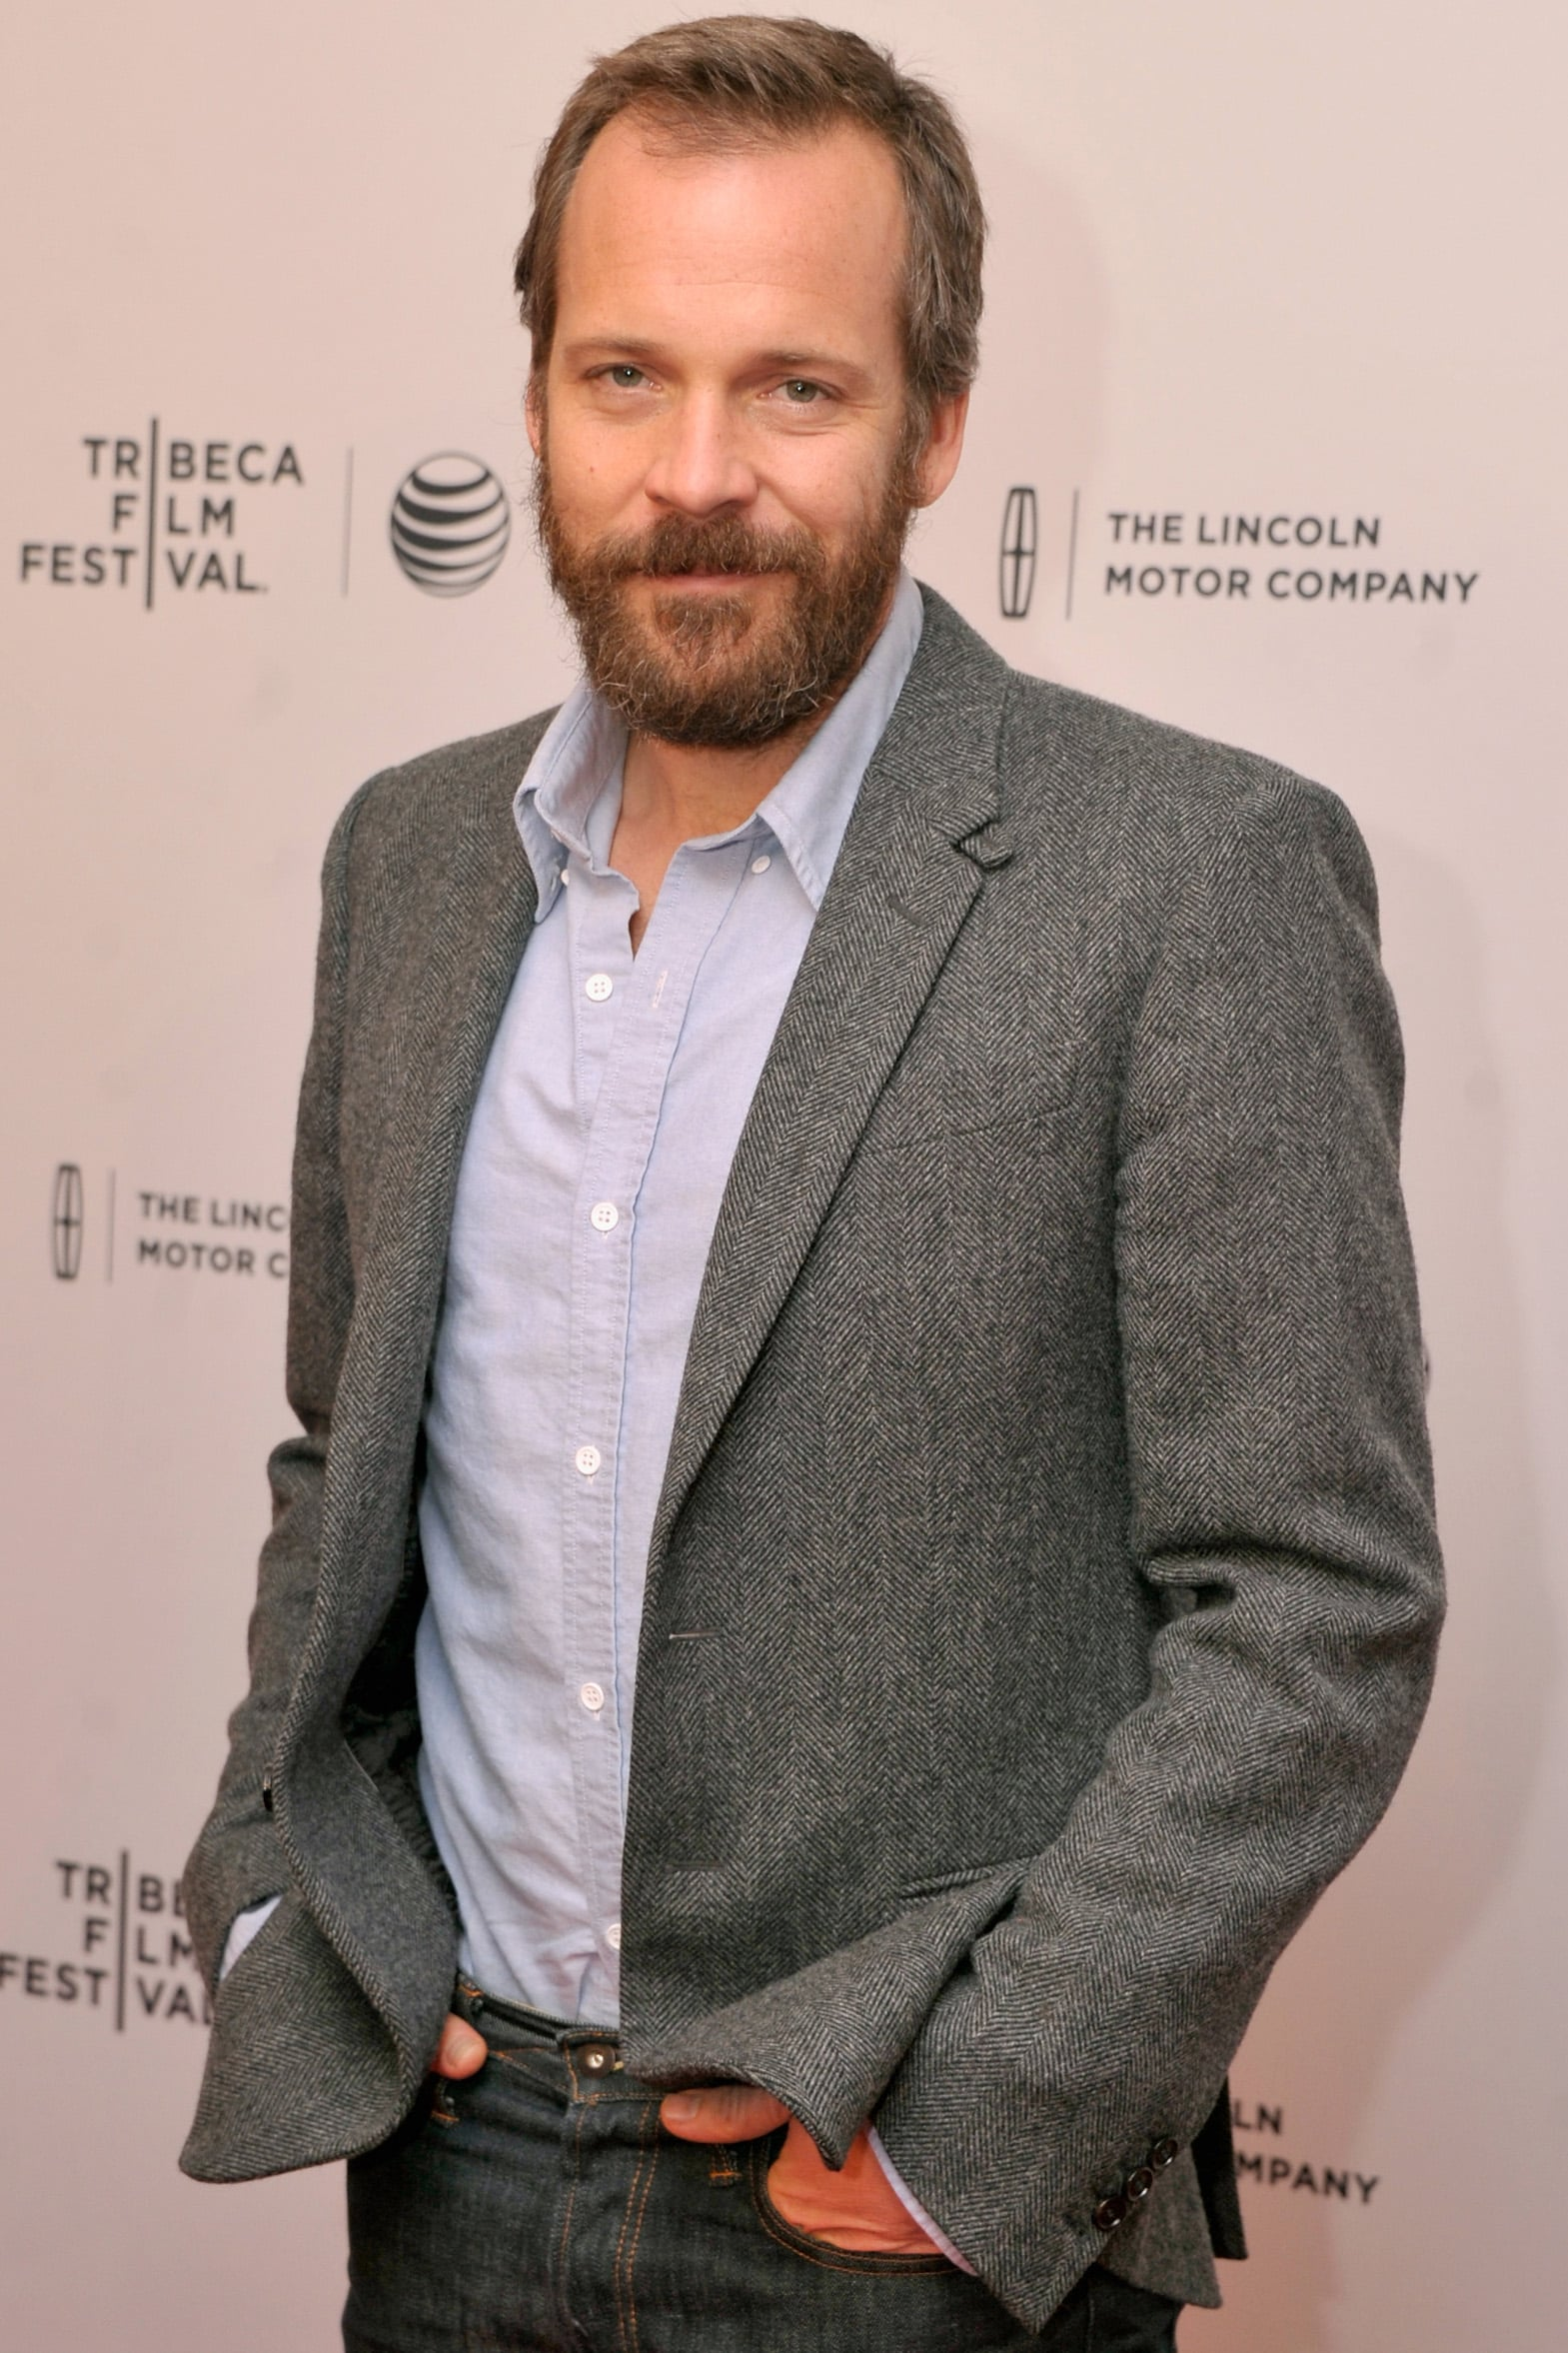 Winona Ryder and Peter Sarsgaard joined Experimenter, The Stanley Milgram Story, an indie drama about the social psychologist.